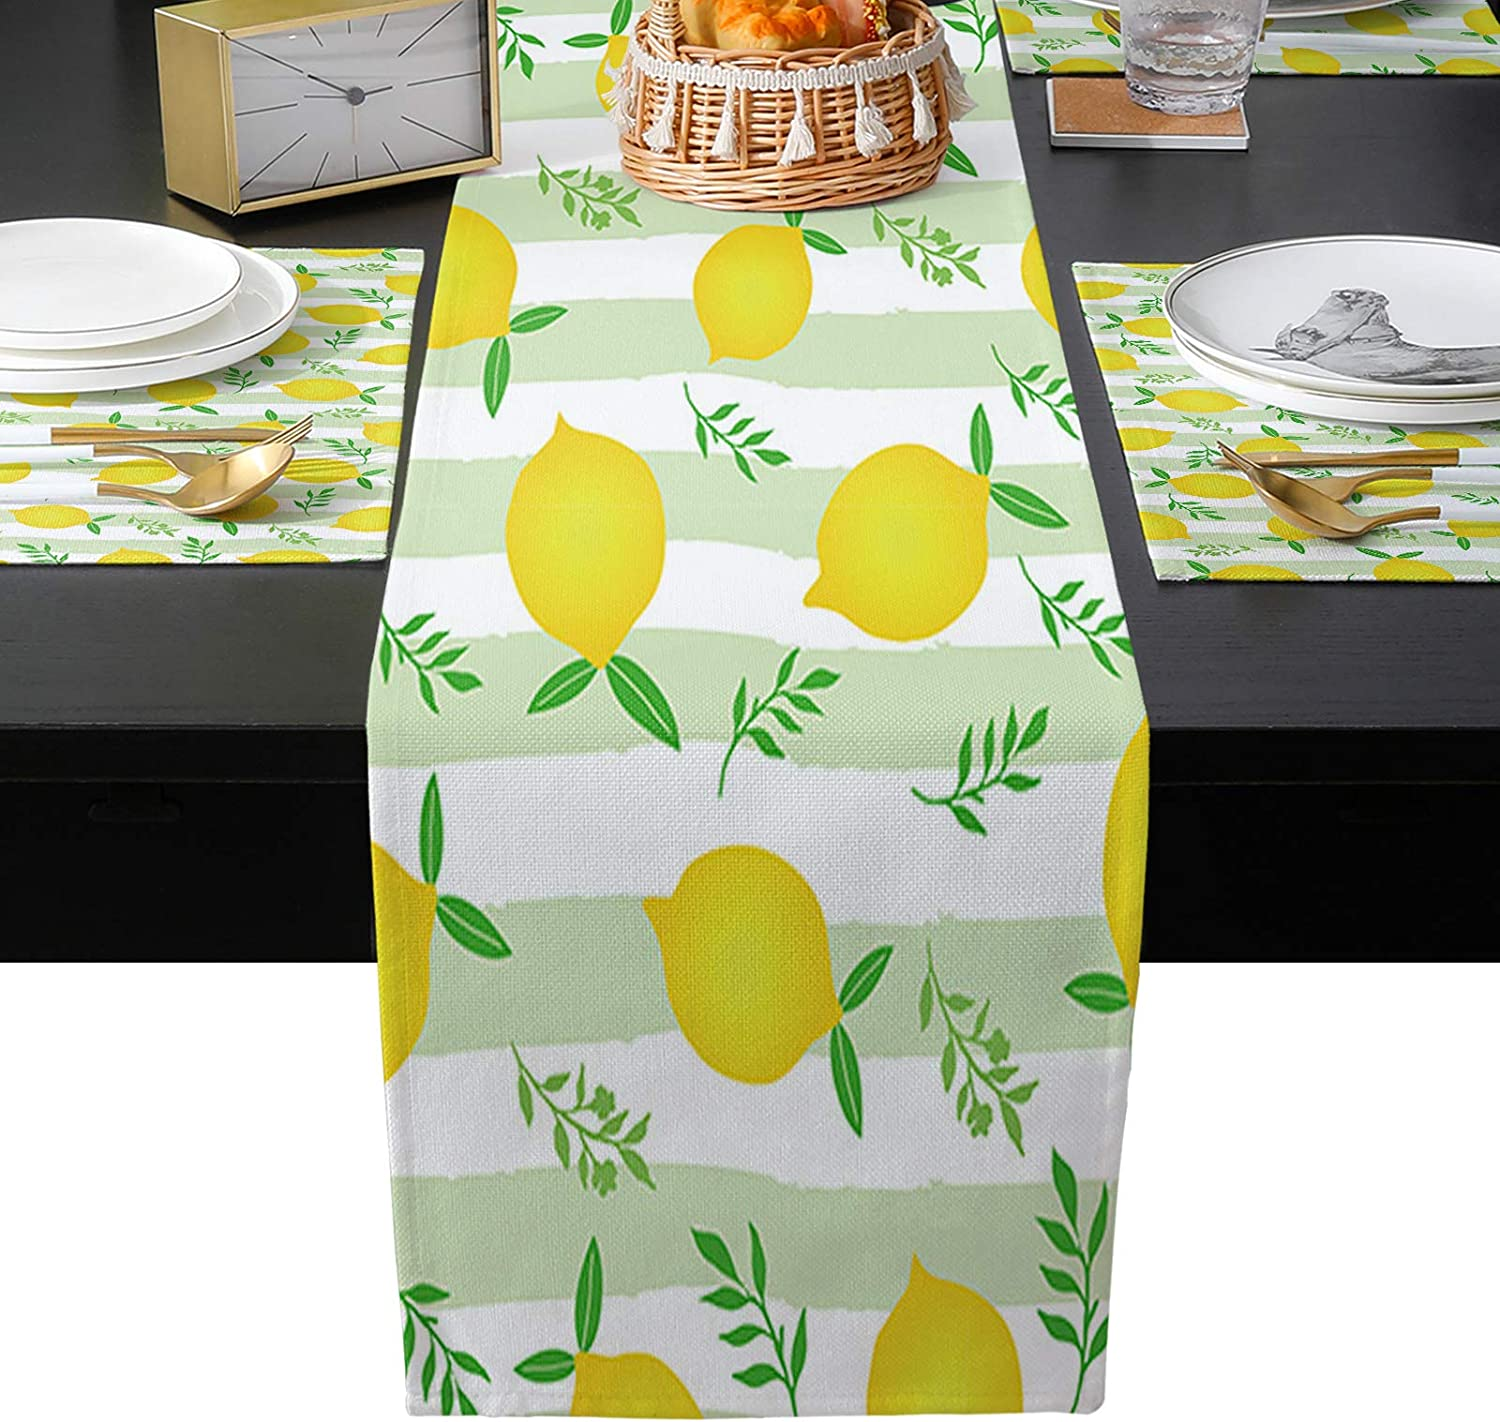 EZON-CH Table Runner and Mats Set 6 Beauty products Watercolor of Rapid rise Country